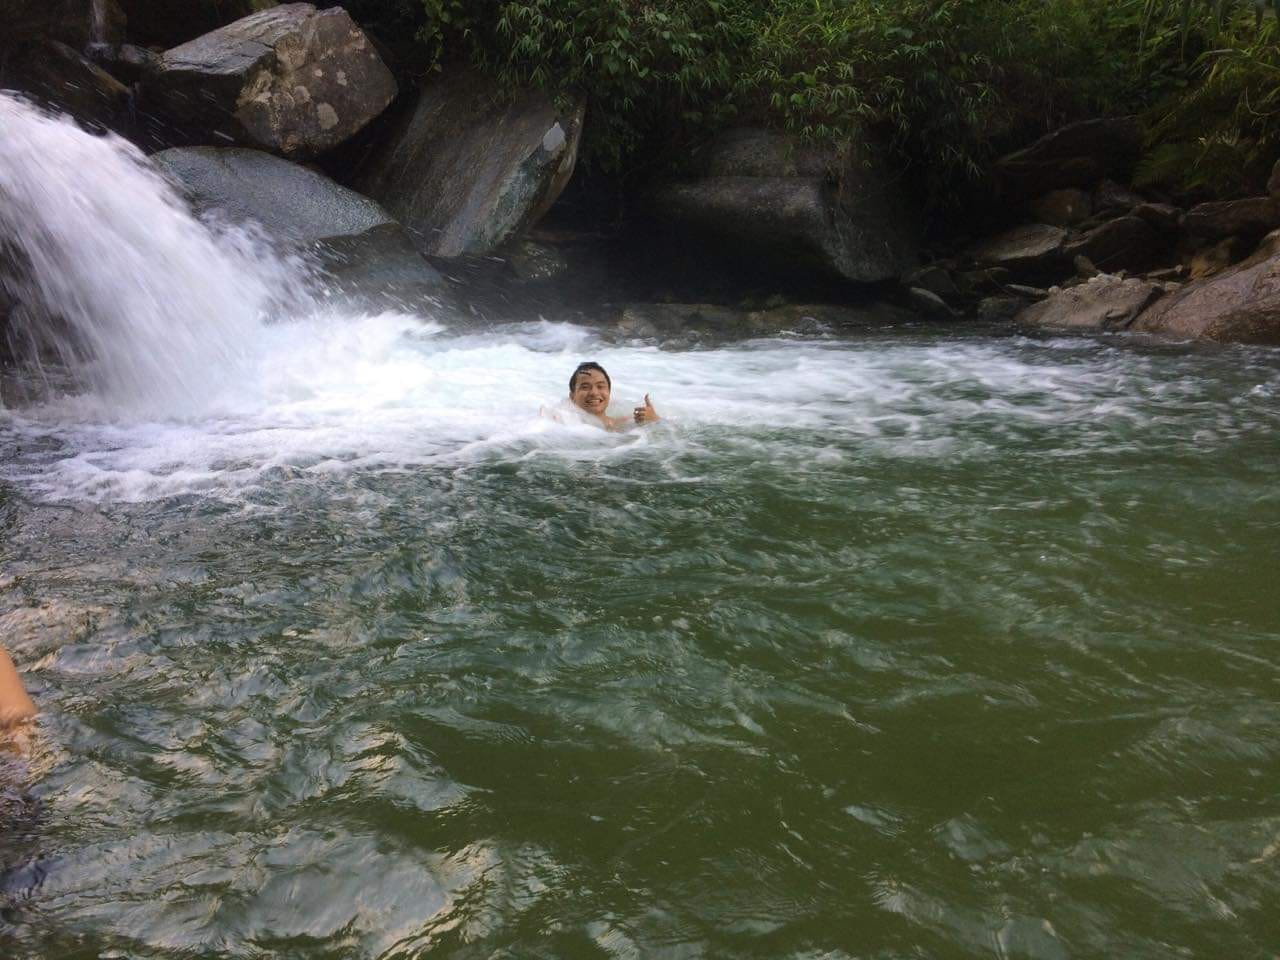 Châng Stream that is very close to my hagiangfaithien homestay. The water is very clean. You can swim all the day without paying money